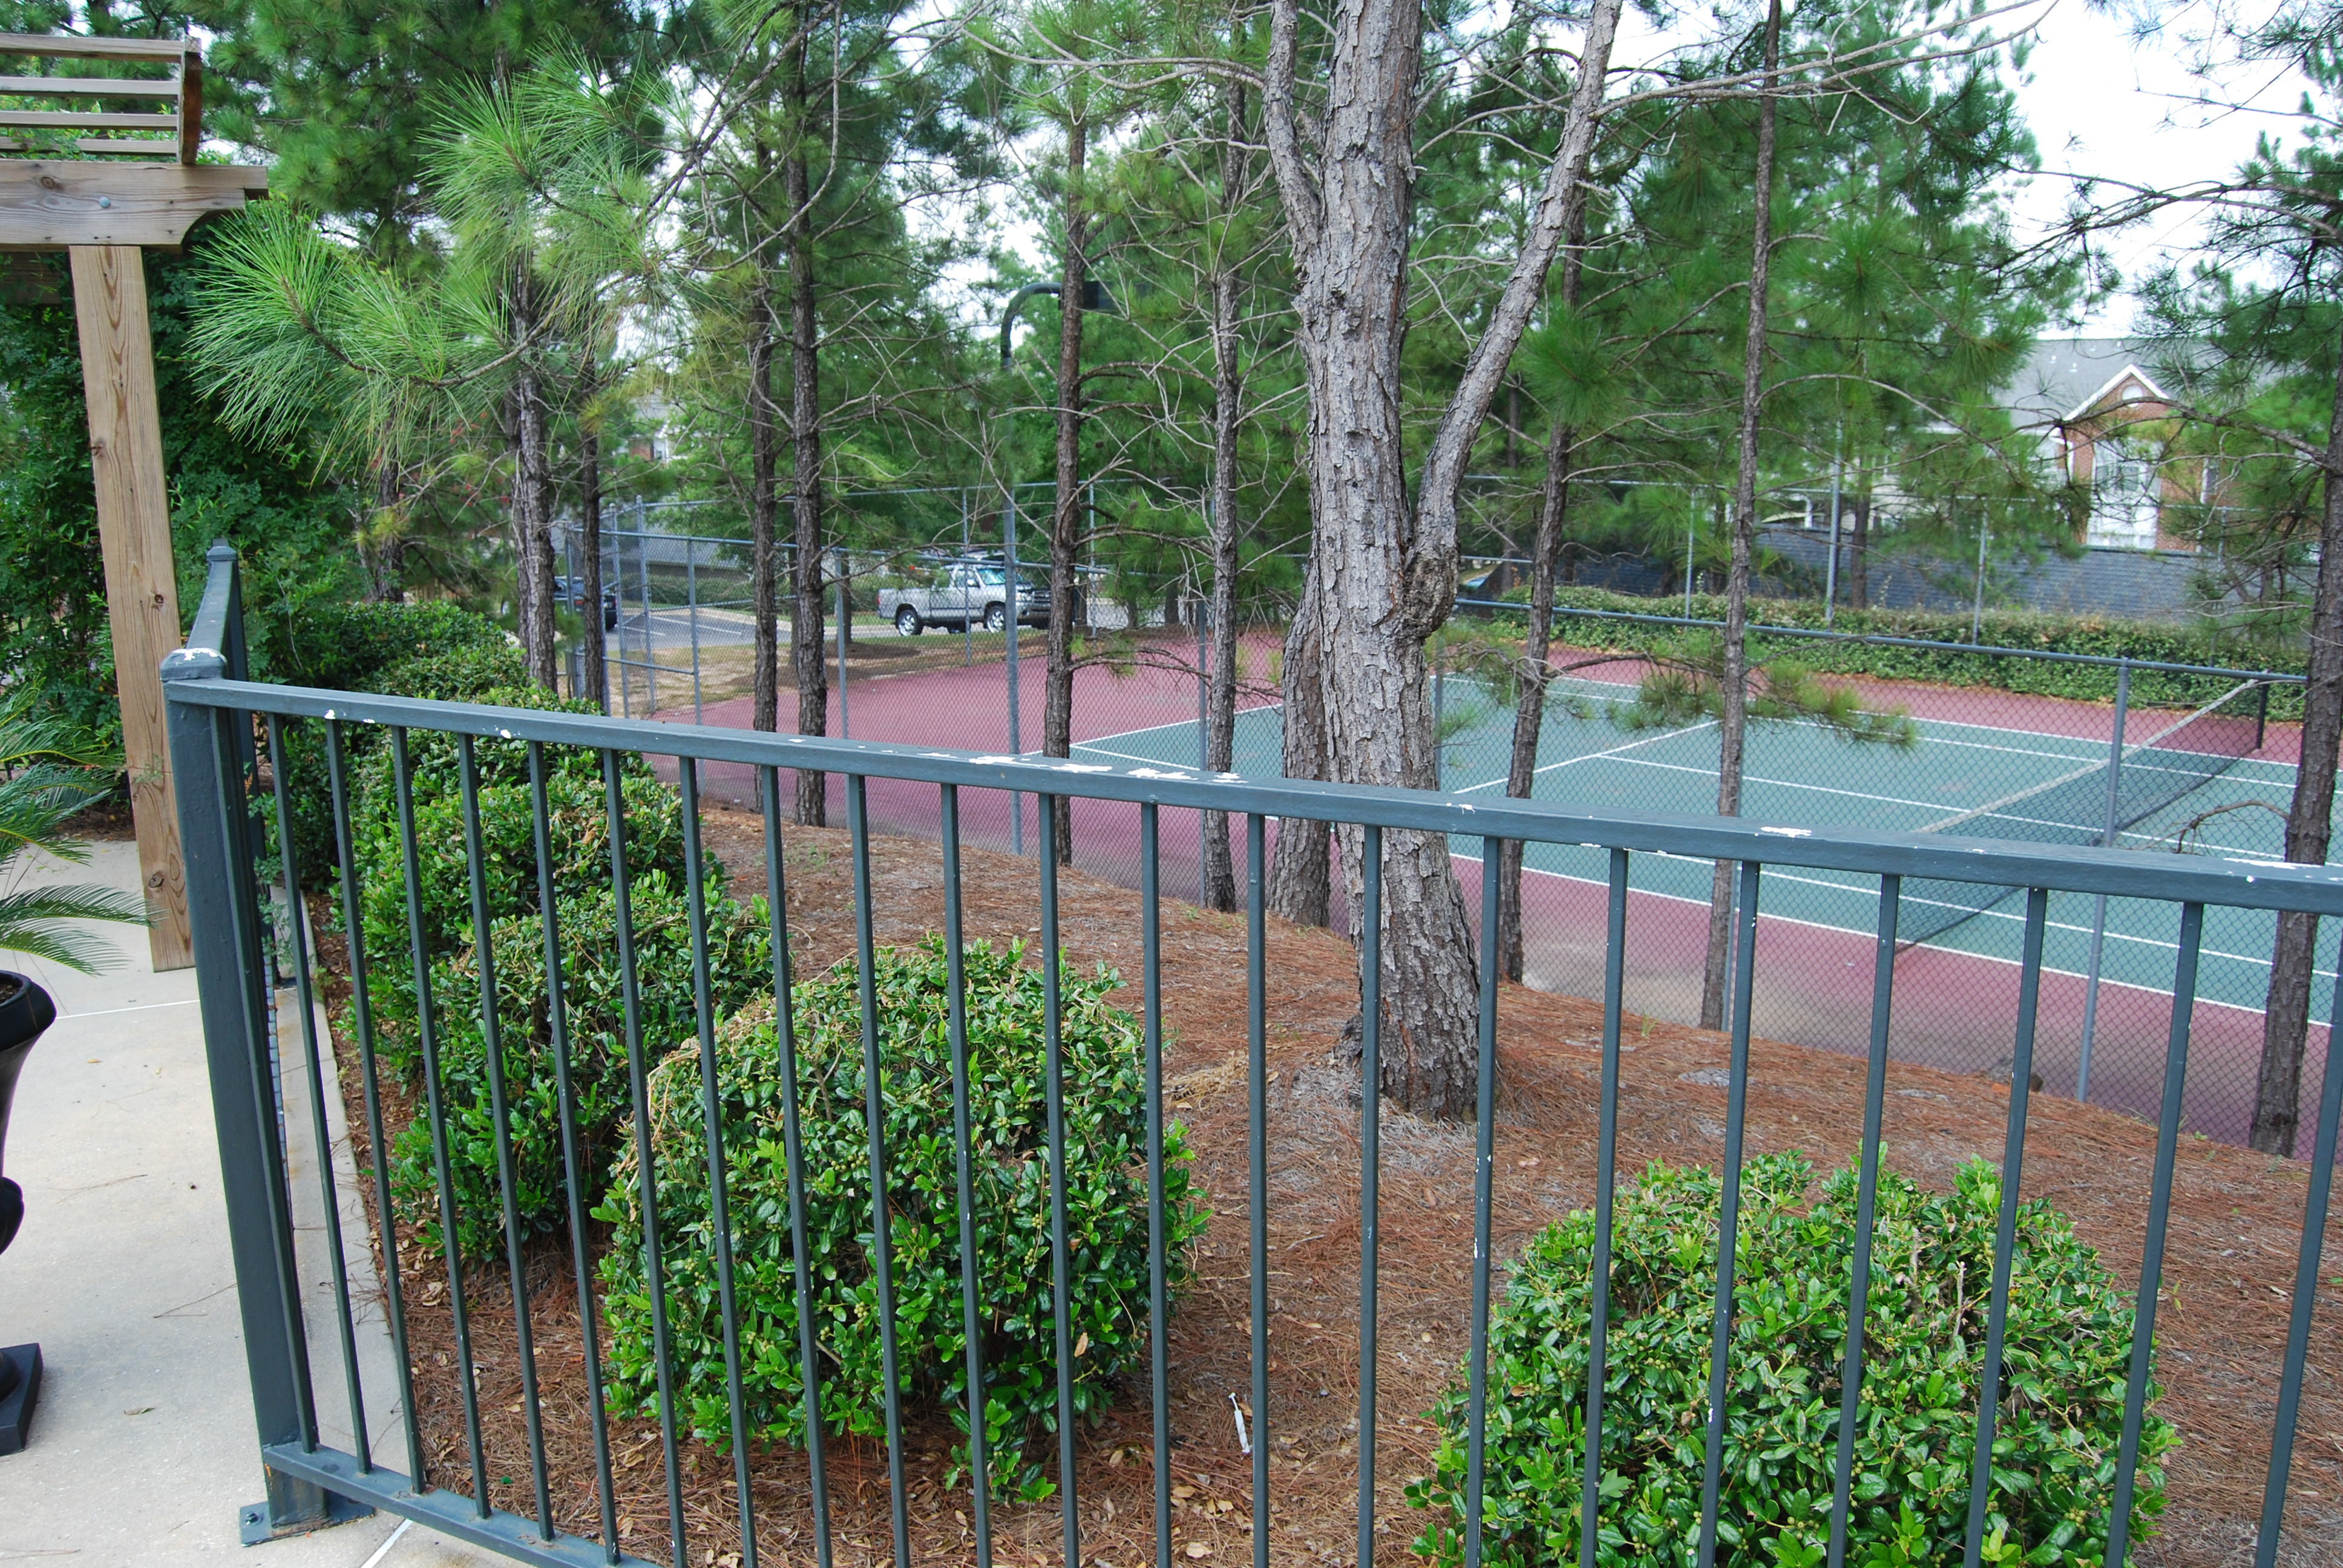 Image of Tennis Court for Timber Ridge Apartments